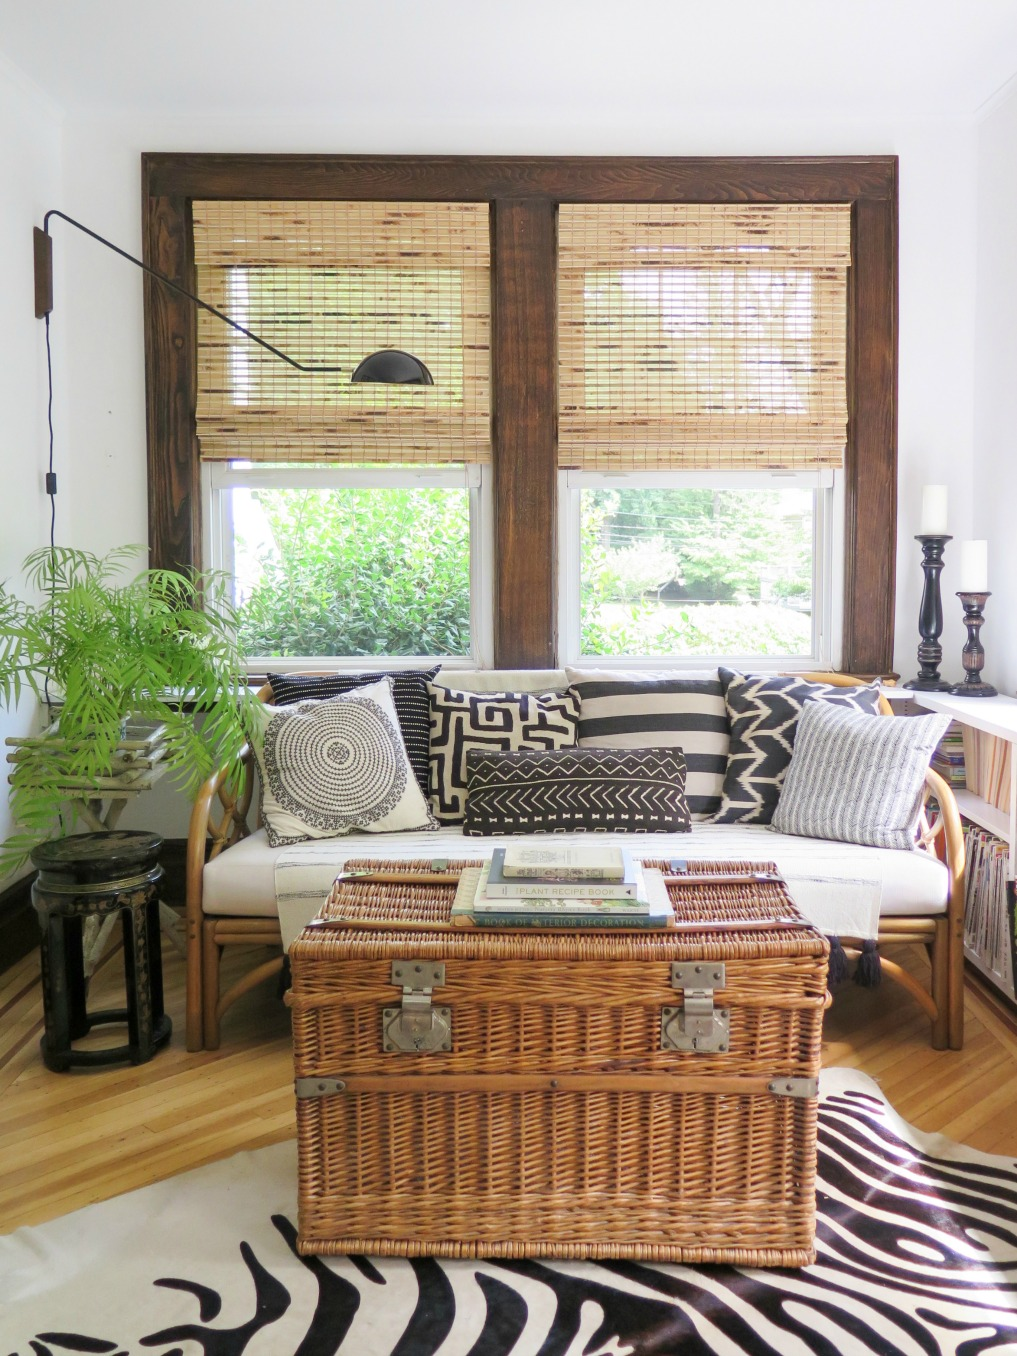 Boho home tour - love this neutral sunroom with texture from rattan, bamboo and lots of plants